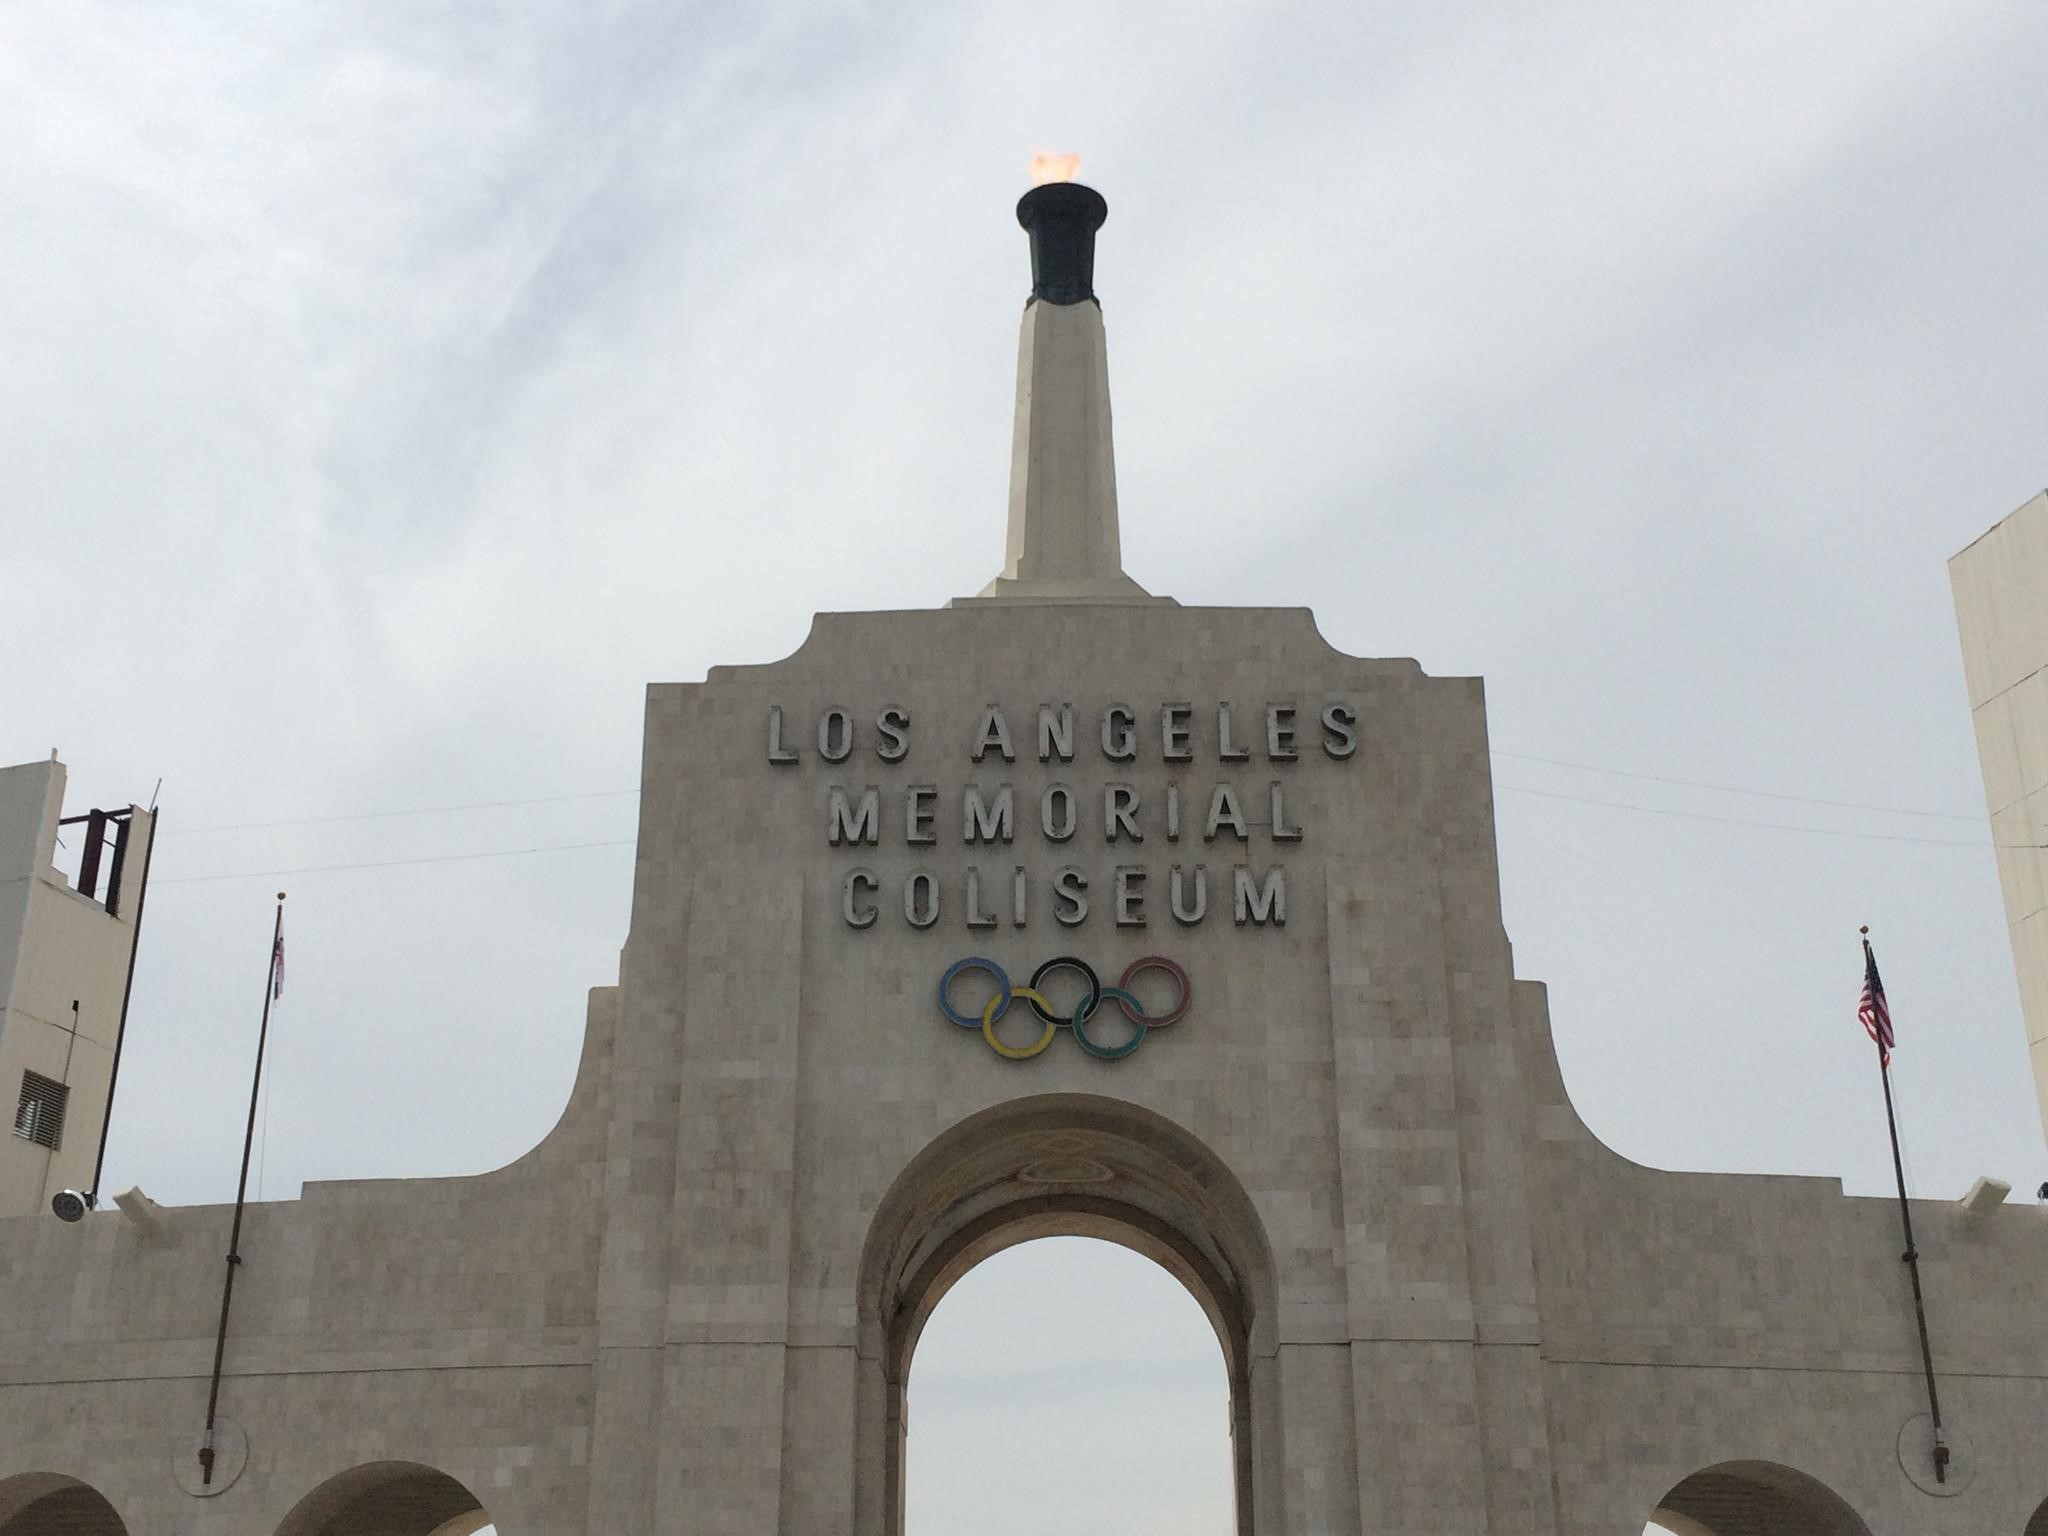 Flags at LA Coliseum